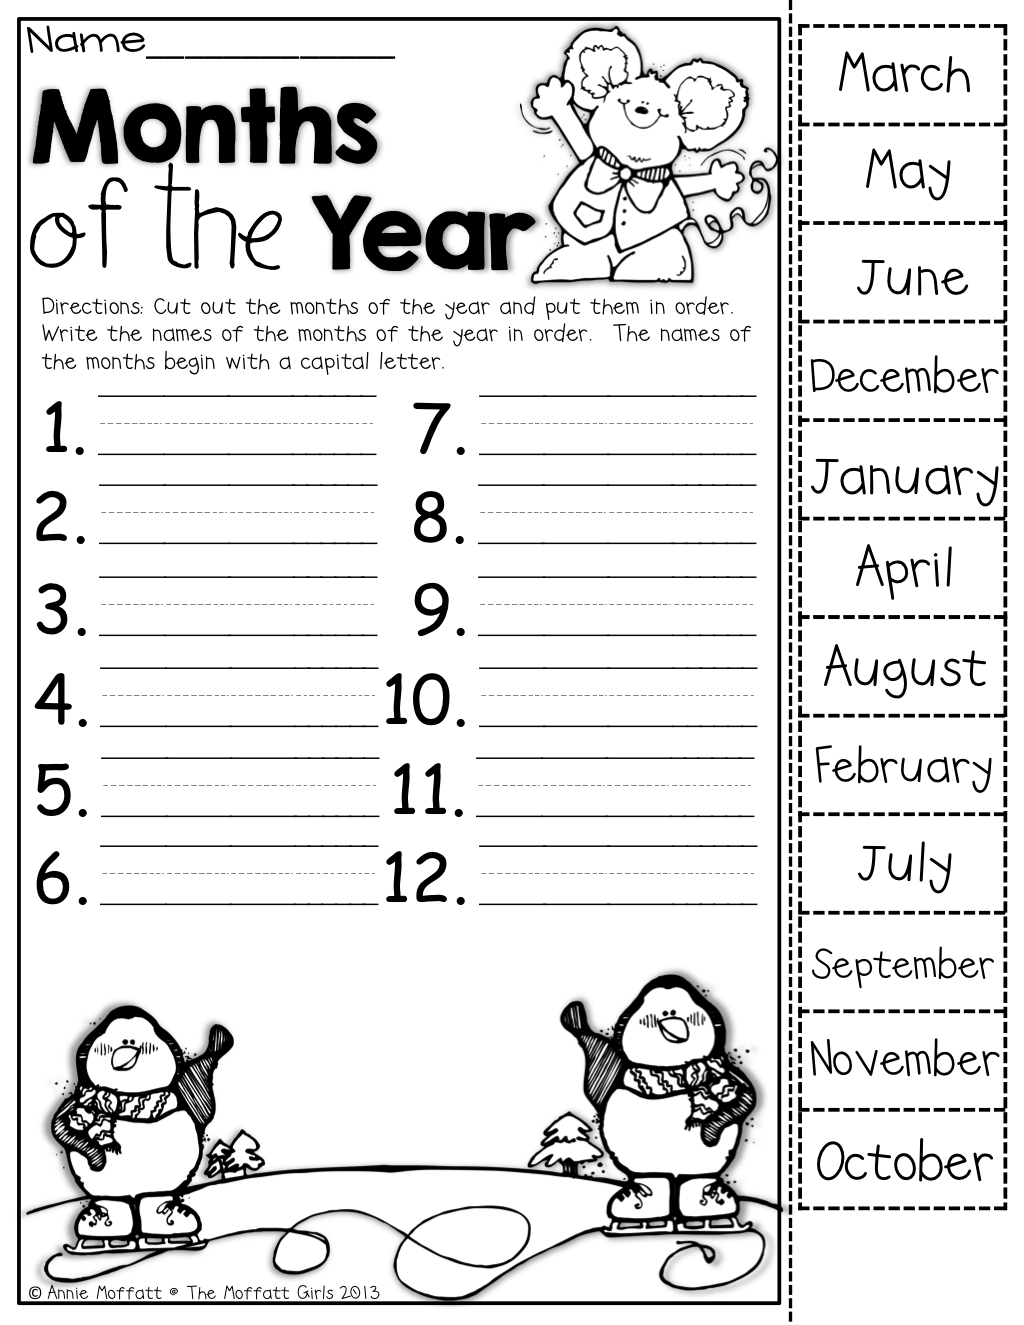 Calendar Practice Worksheets Kindergarten : Months of the year cut out put them in order